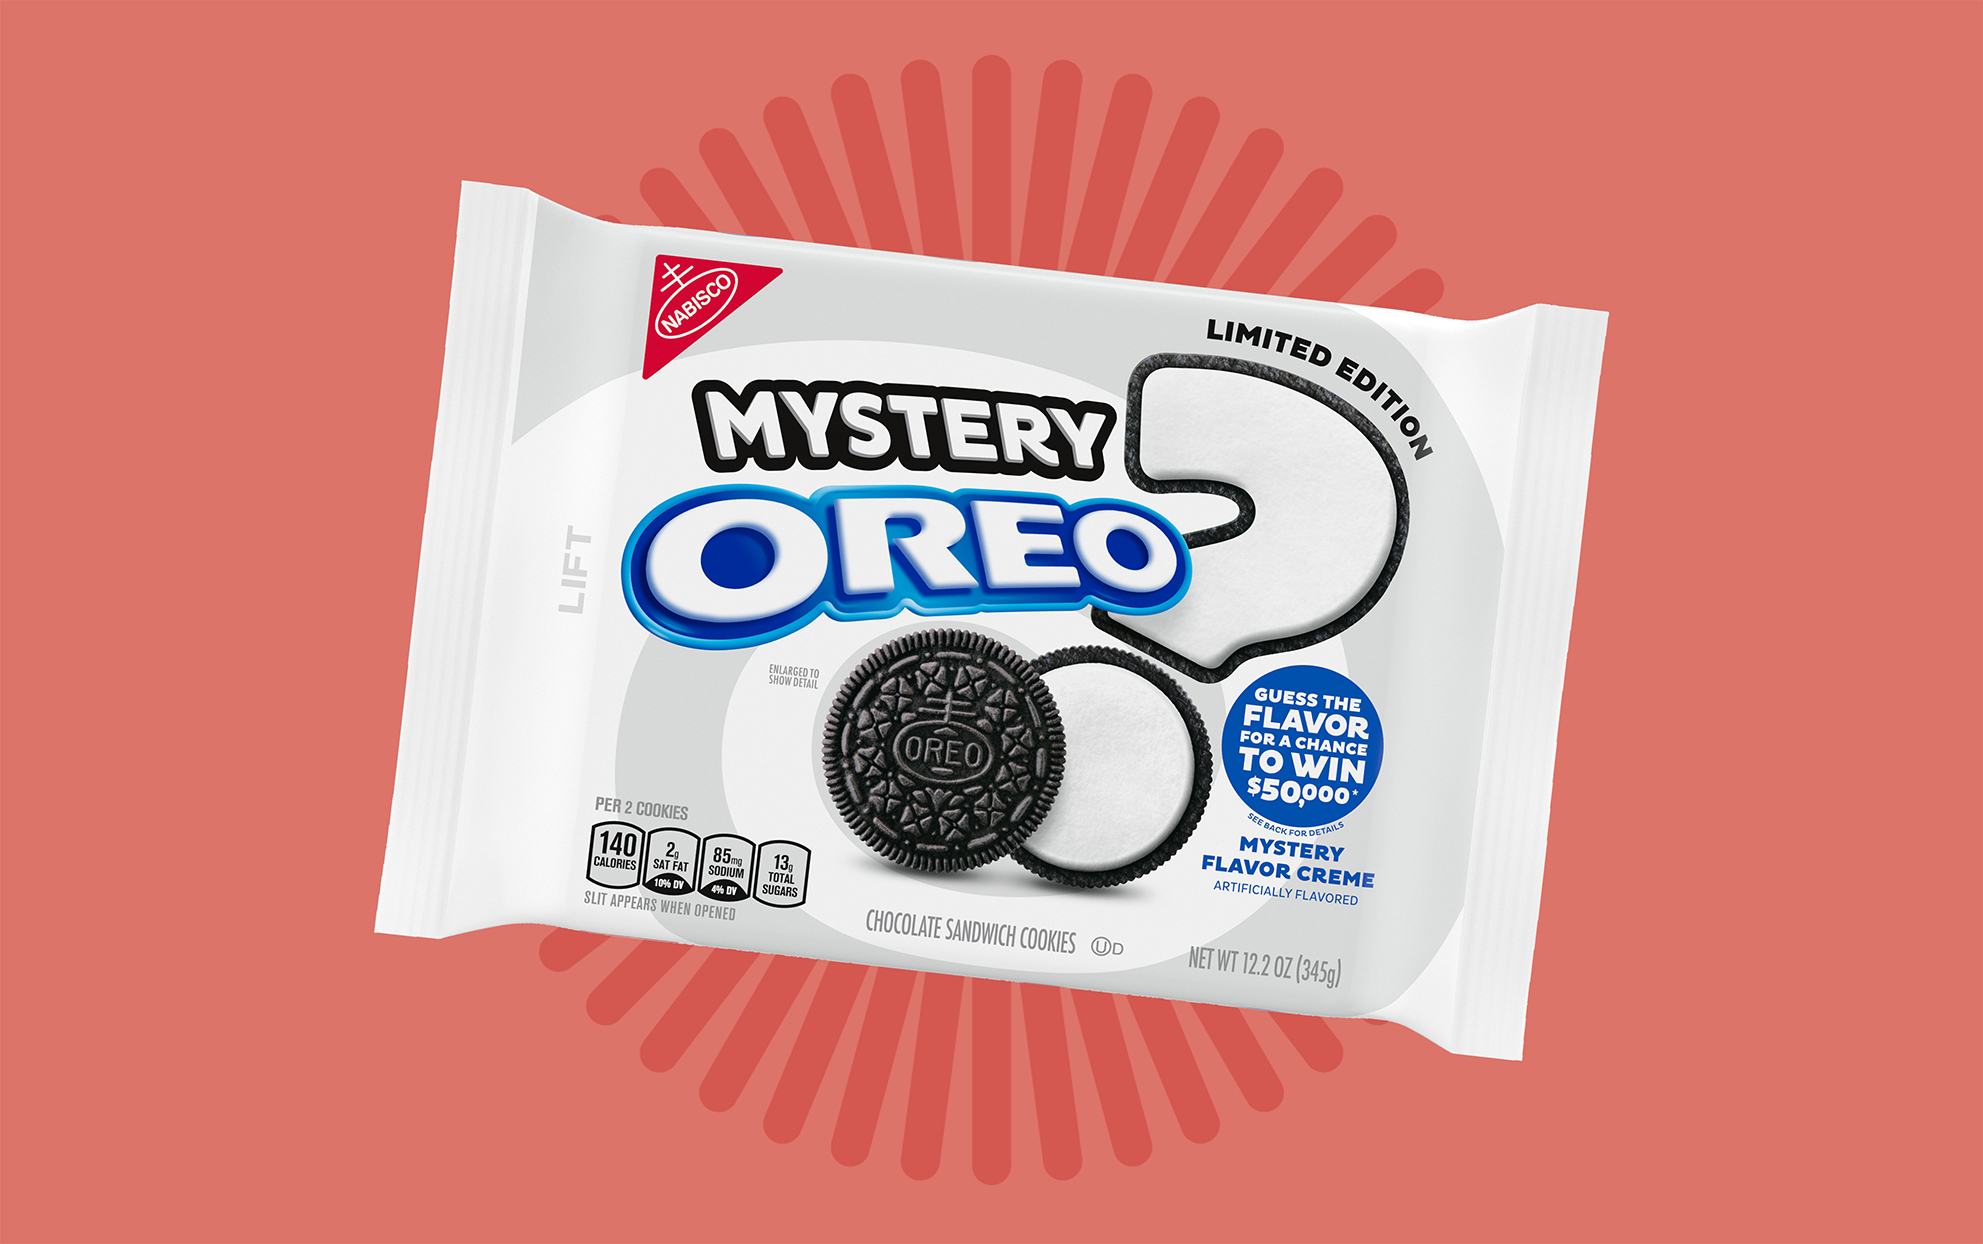 Mystery Oreo package on pink background